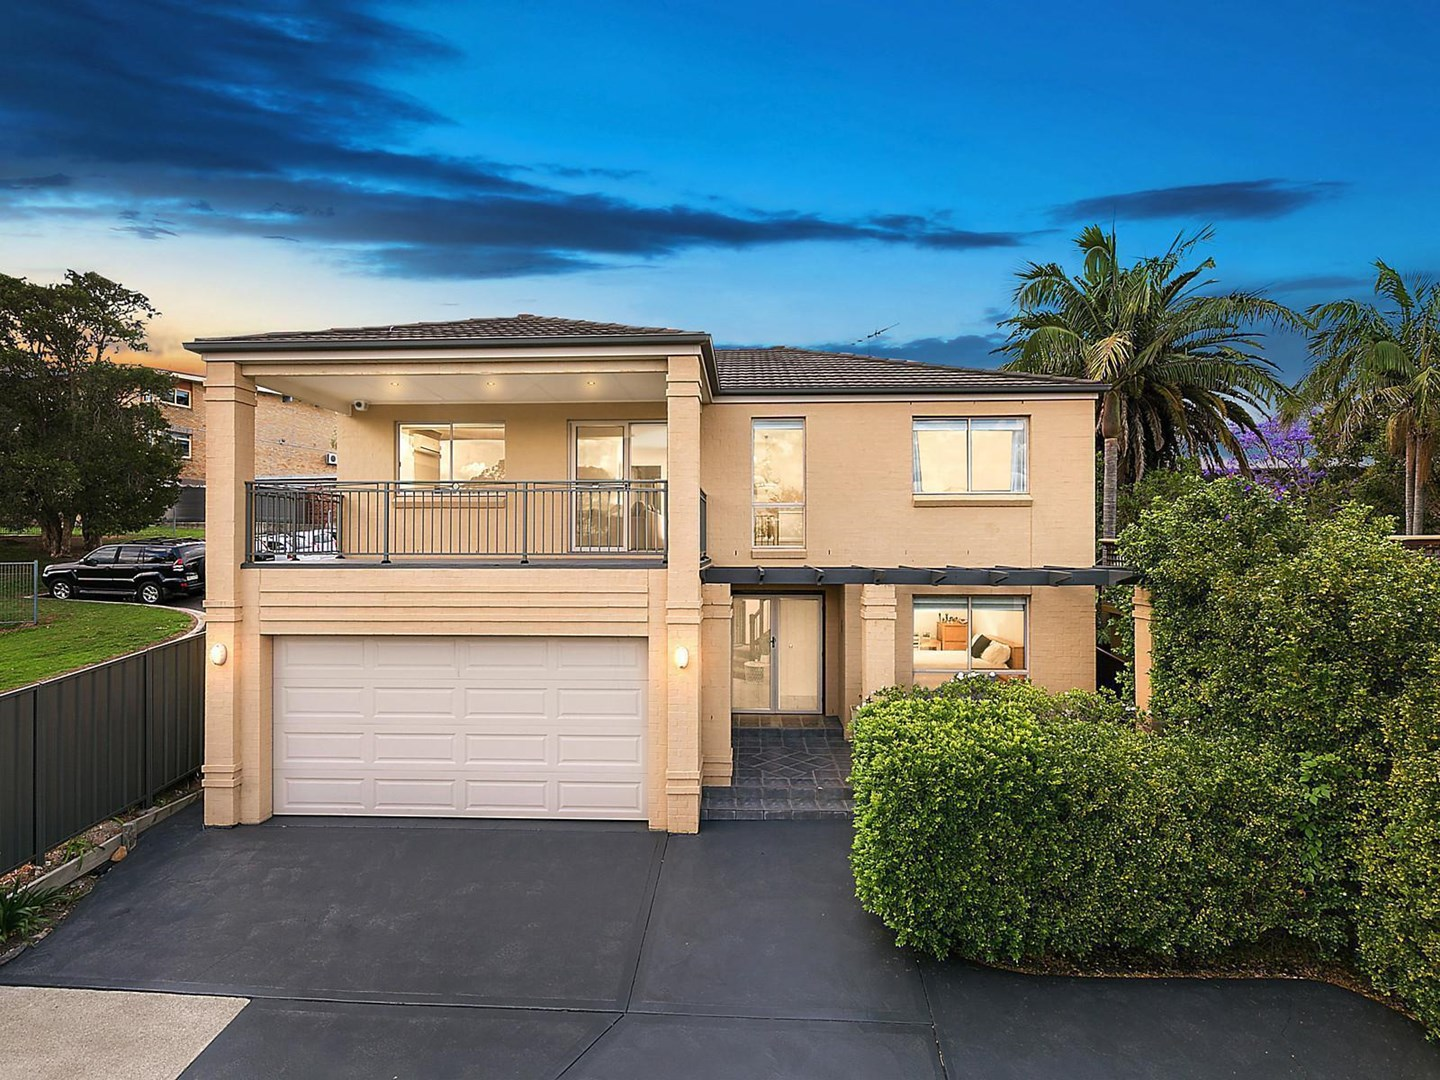 For Sale, price  guide $890,000  - $950,000 (under offer)